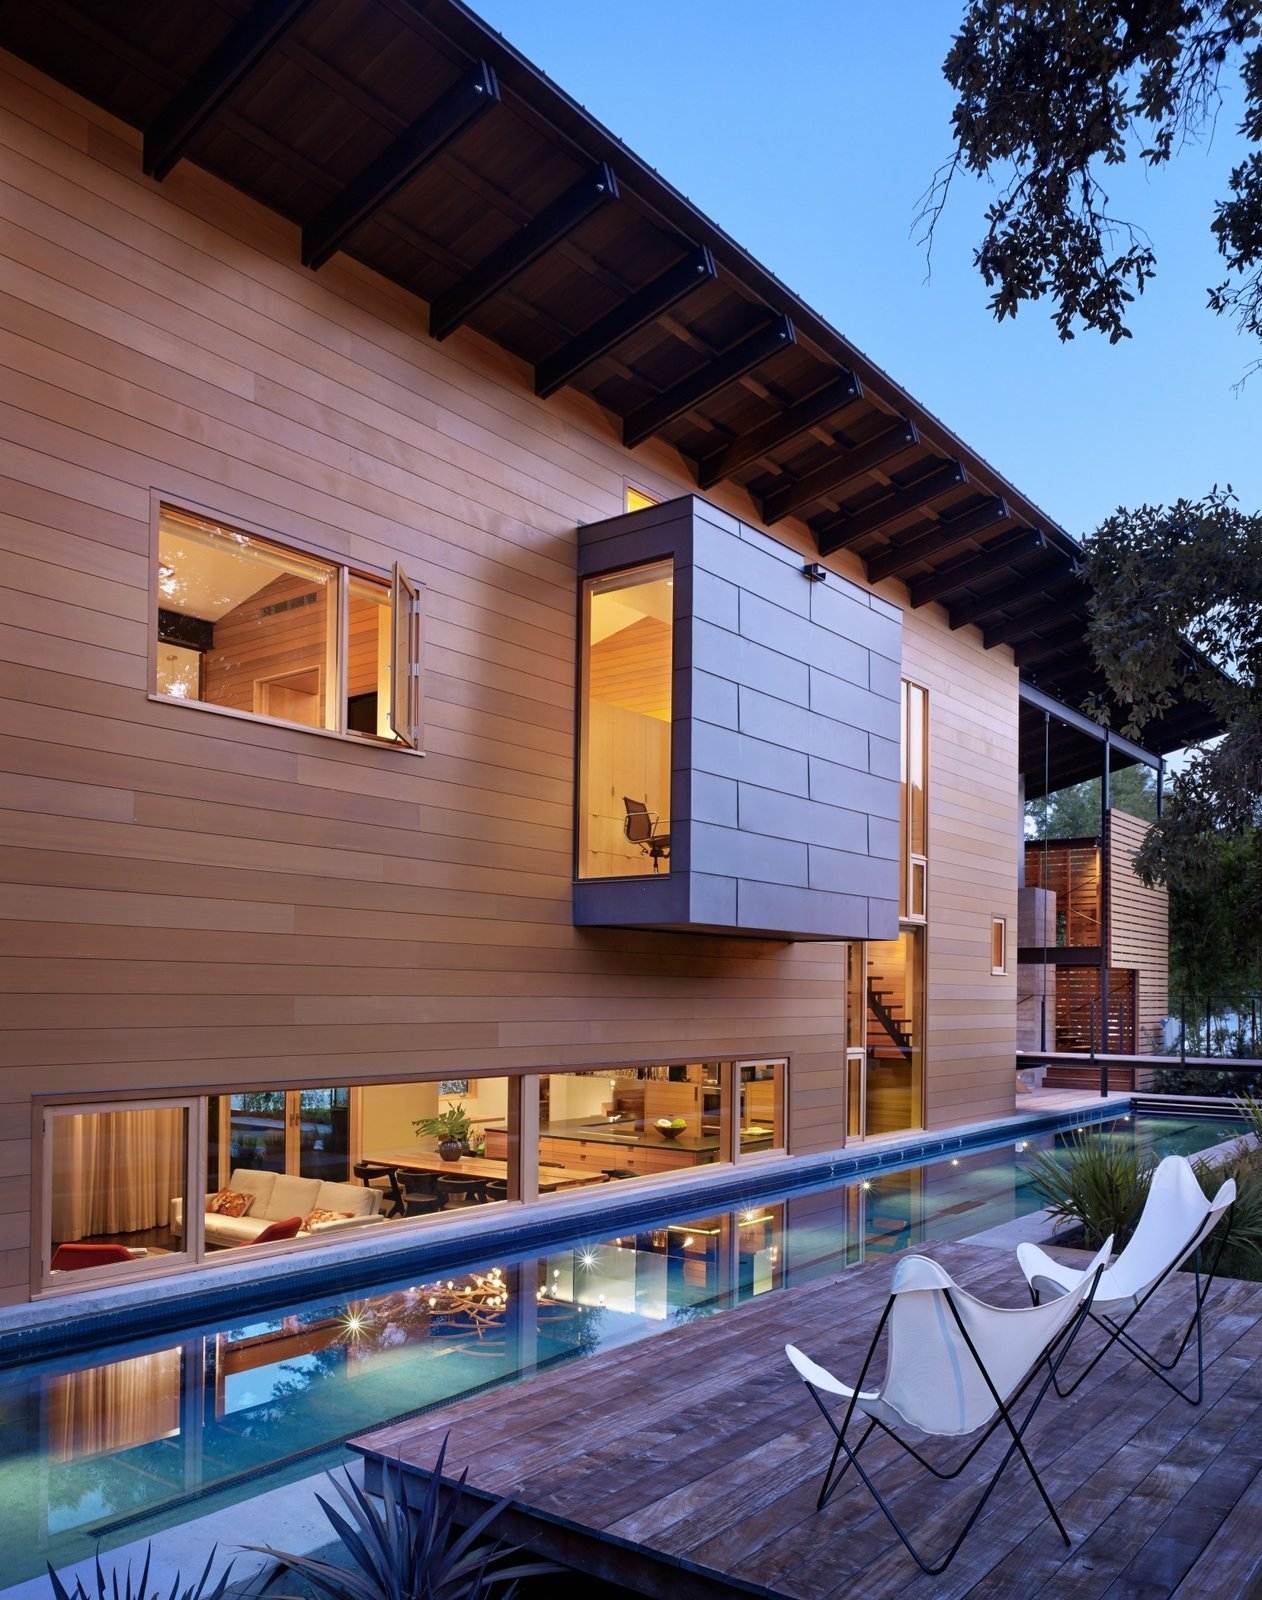 "Large, Wood, Small, Back Yard, Exterior, House, and Wood ""Exposing the craft and detail of the materials was a key part of the design,"" Flato notes. The texture of the house, he says, can be observed in the concrete retaining wall for the lap pool.  Best Exterior Wood Photos from 16 Boxy Modern Pools For This Summer"